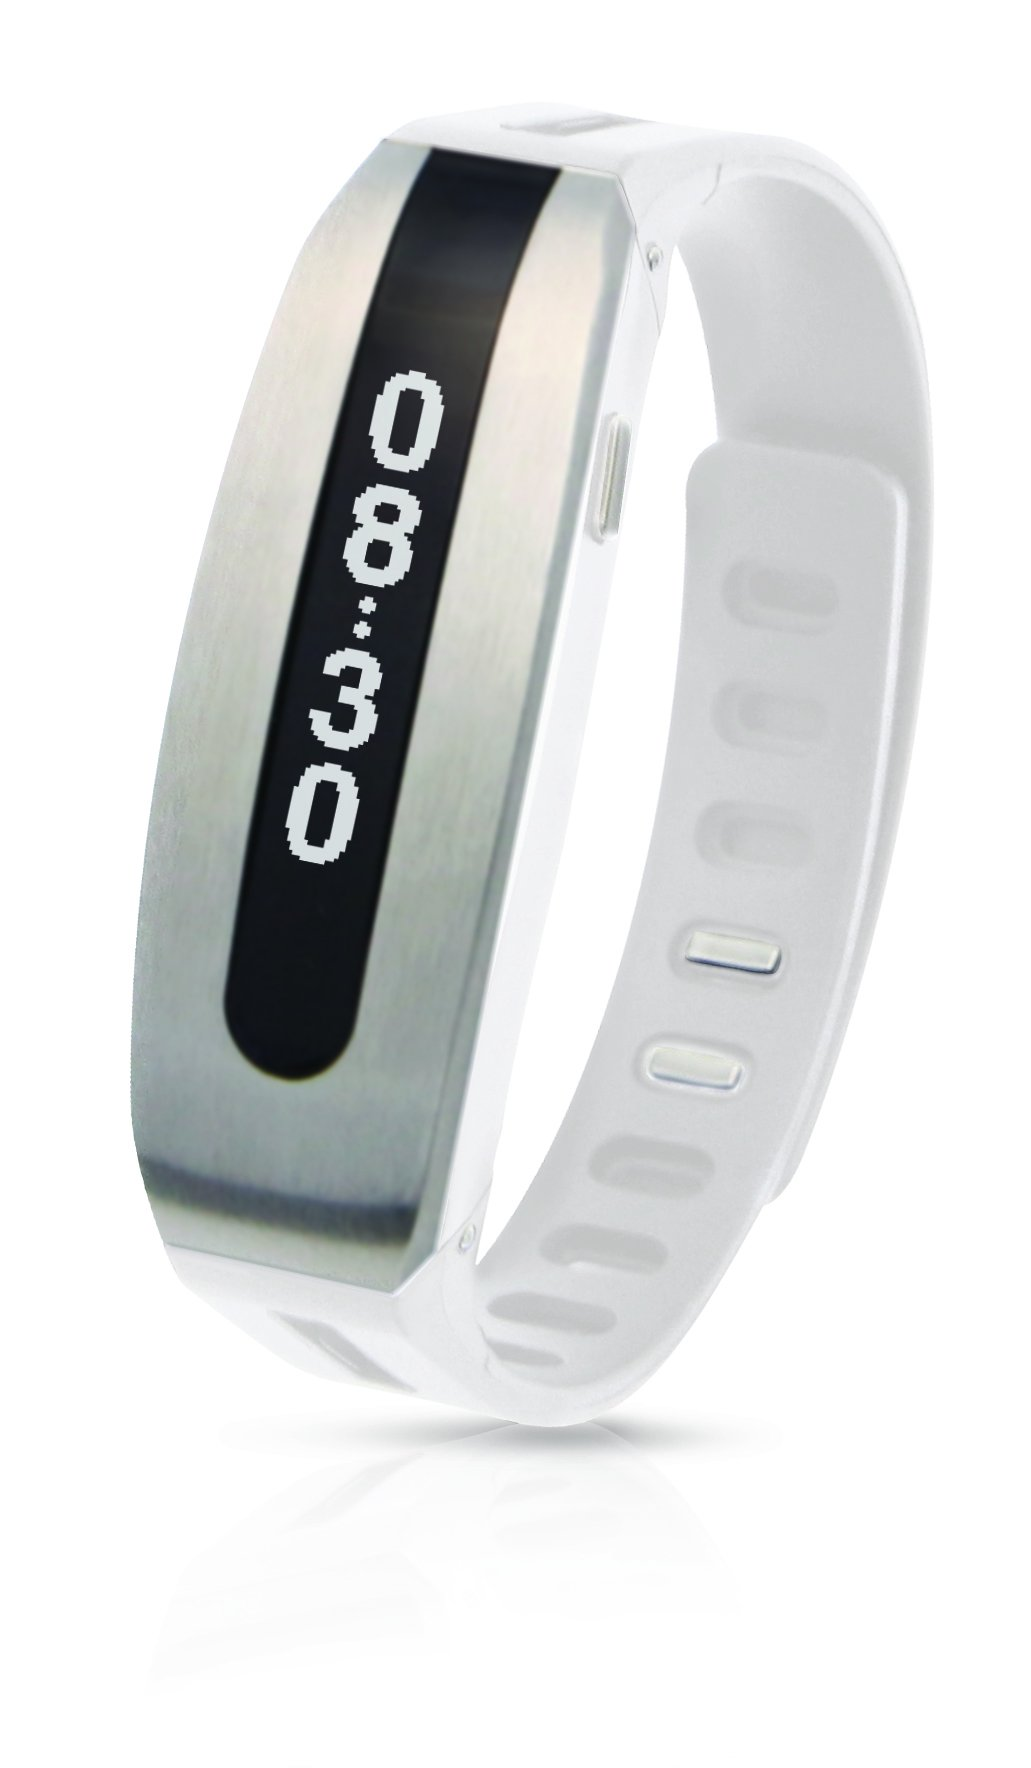 PAPAGO! GOLiFE Care Smart Fitness Band, Activity Tracker, Sleep Monitor, Smart Notification, Text Message, Emails, Social Medias, Messengers, Alarms, Idle Alert (Silver White)